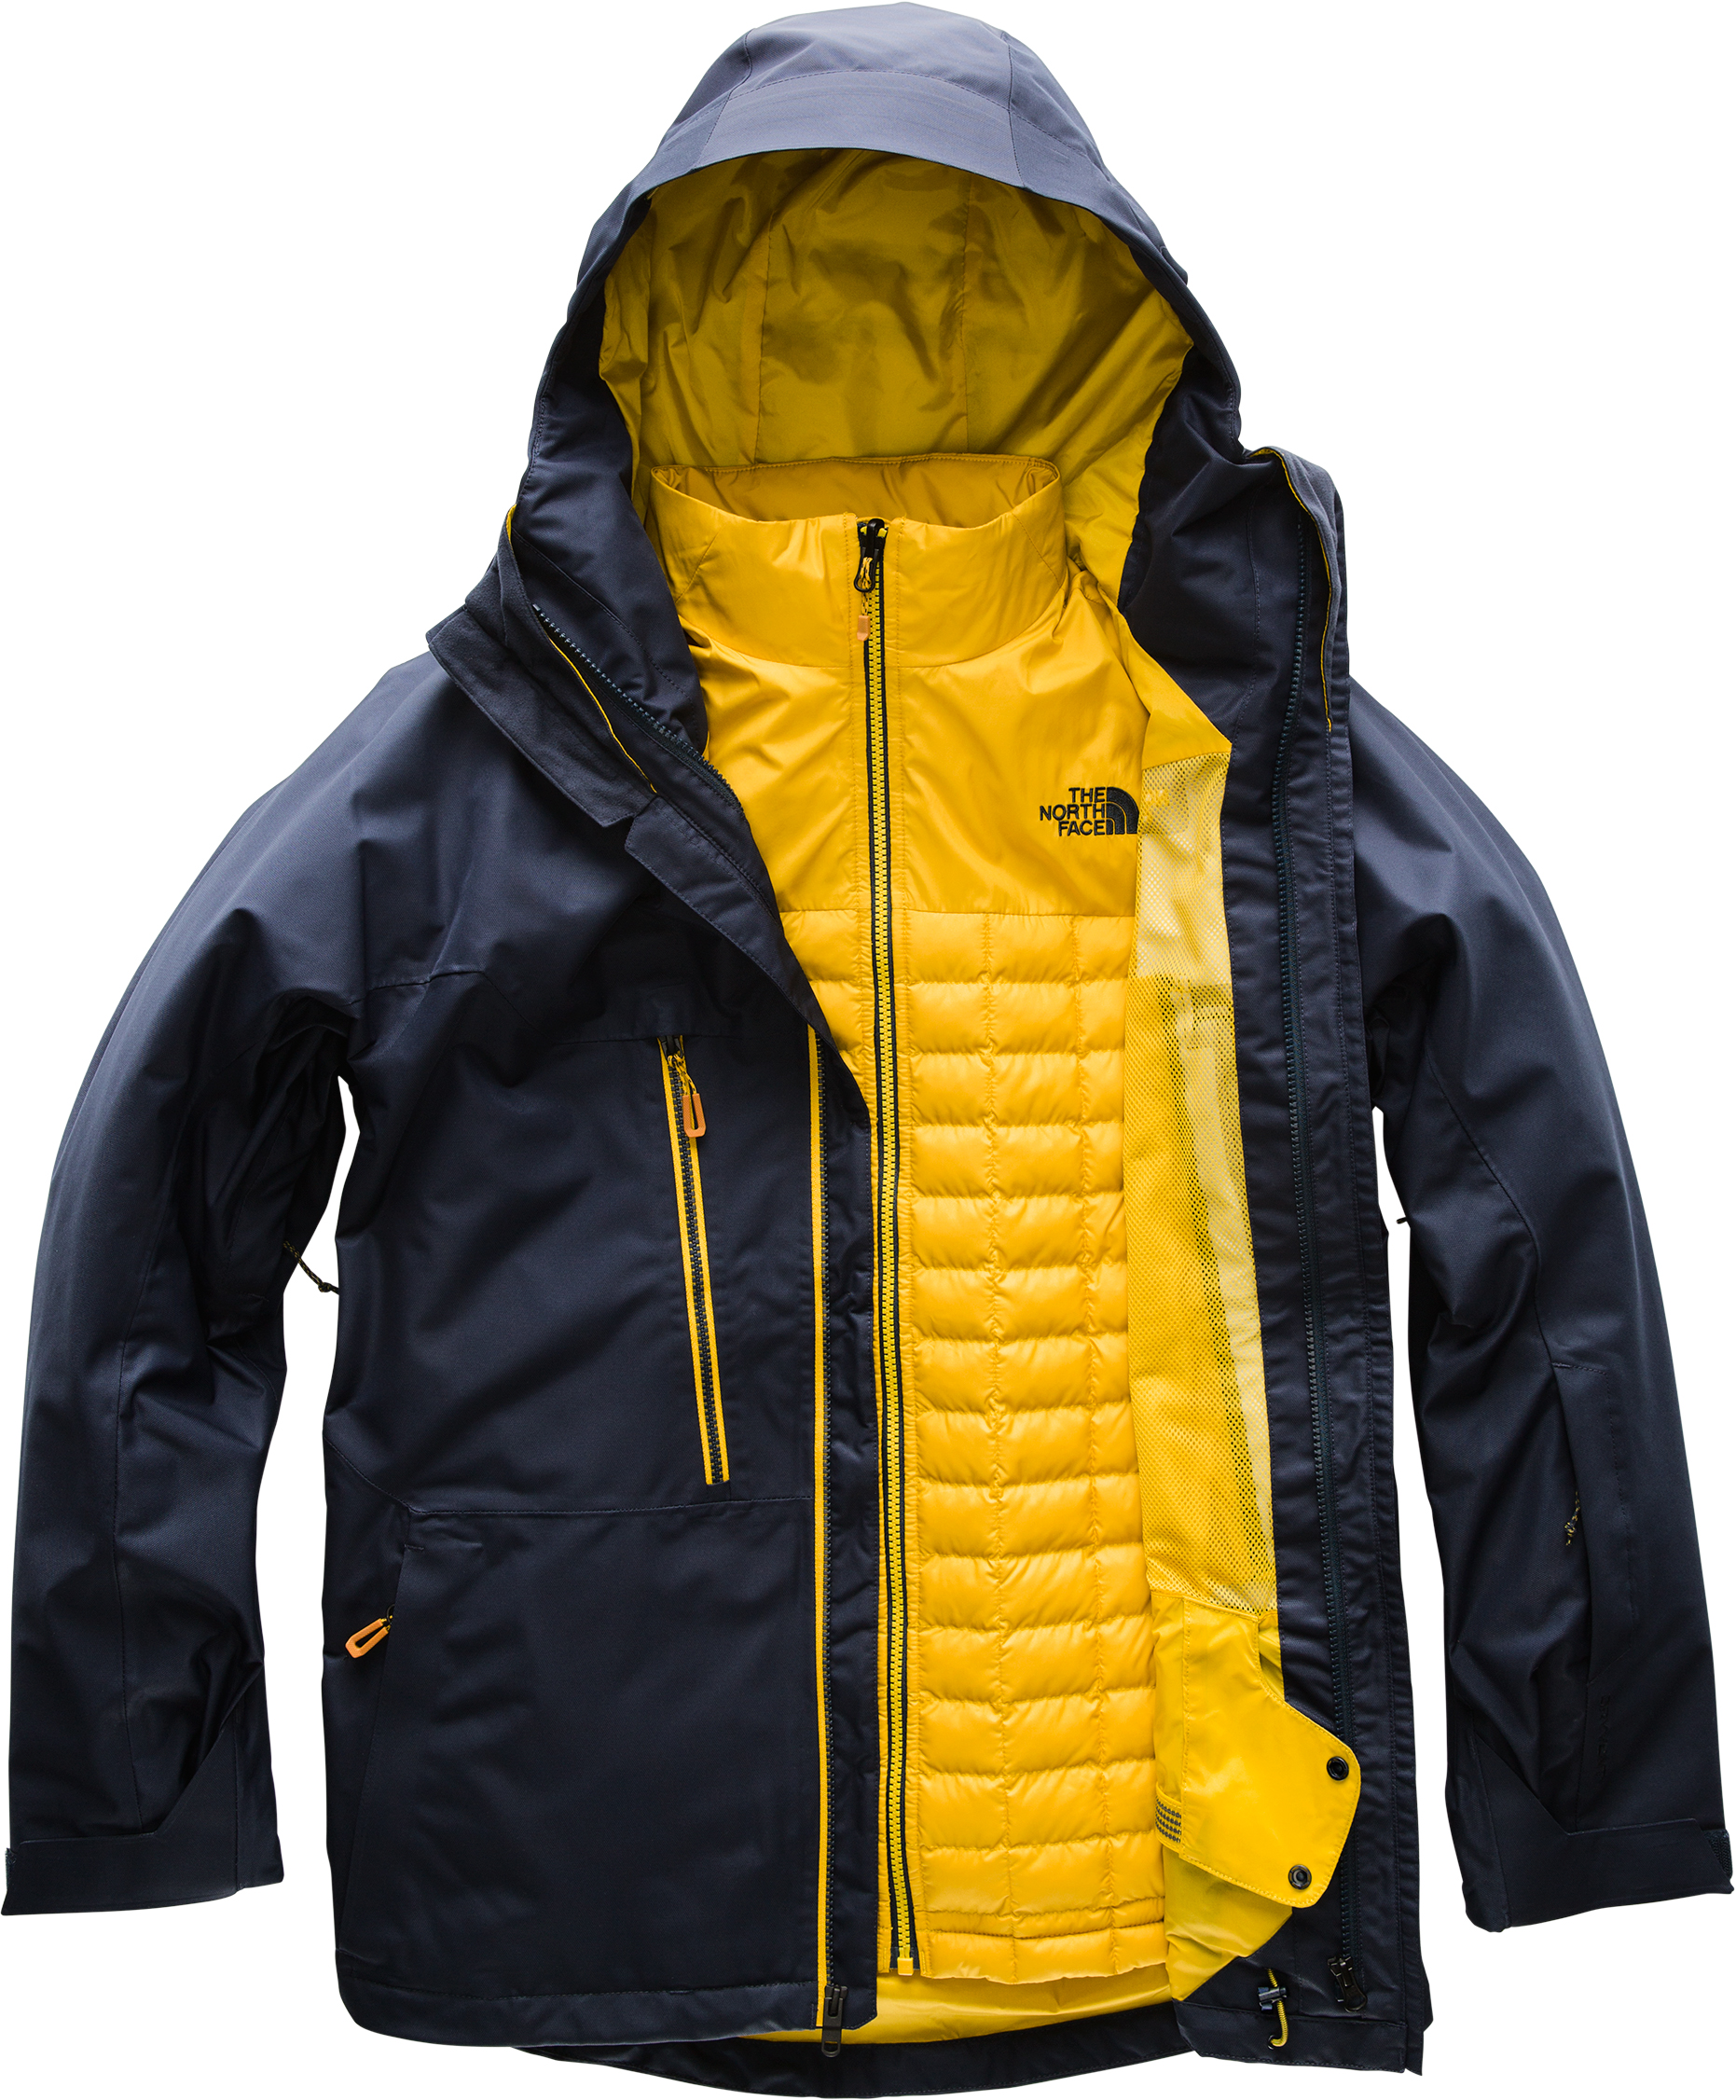 a69dc1b3eaa The North Face ThermoBall Snow Triclimate Jacket - Men s